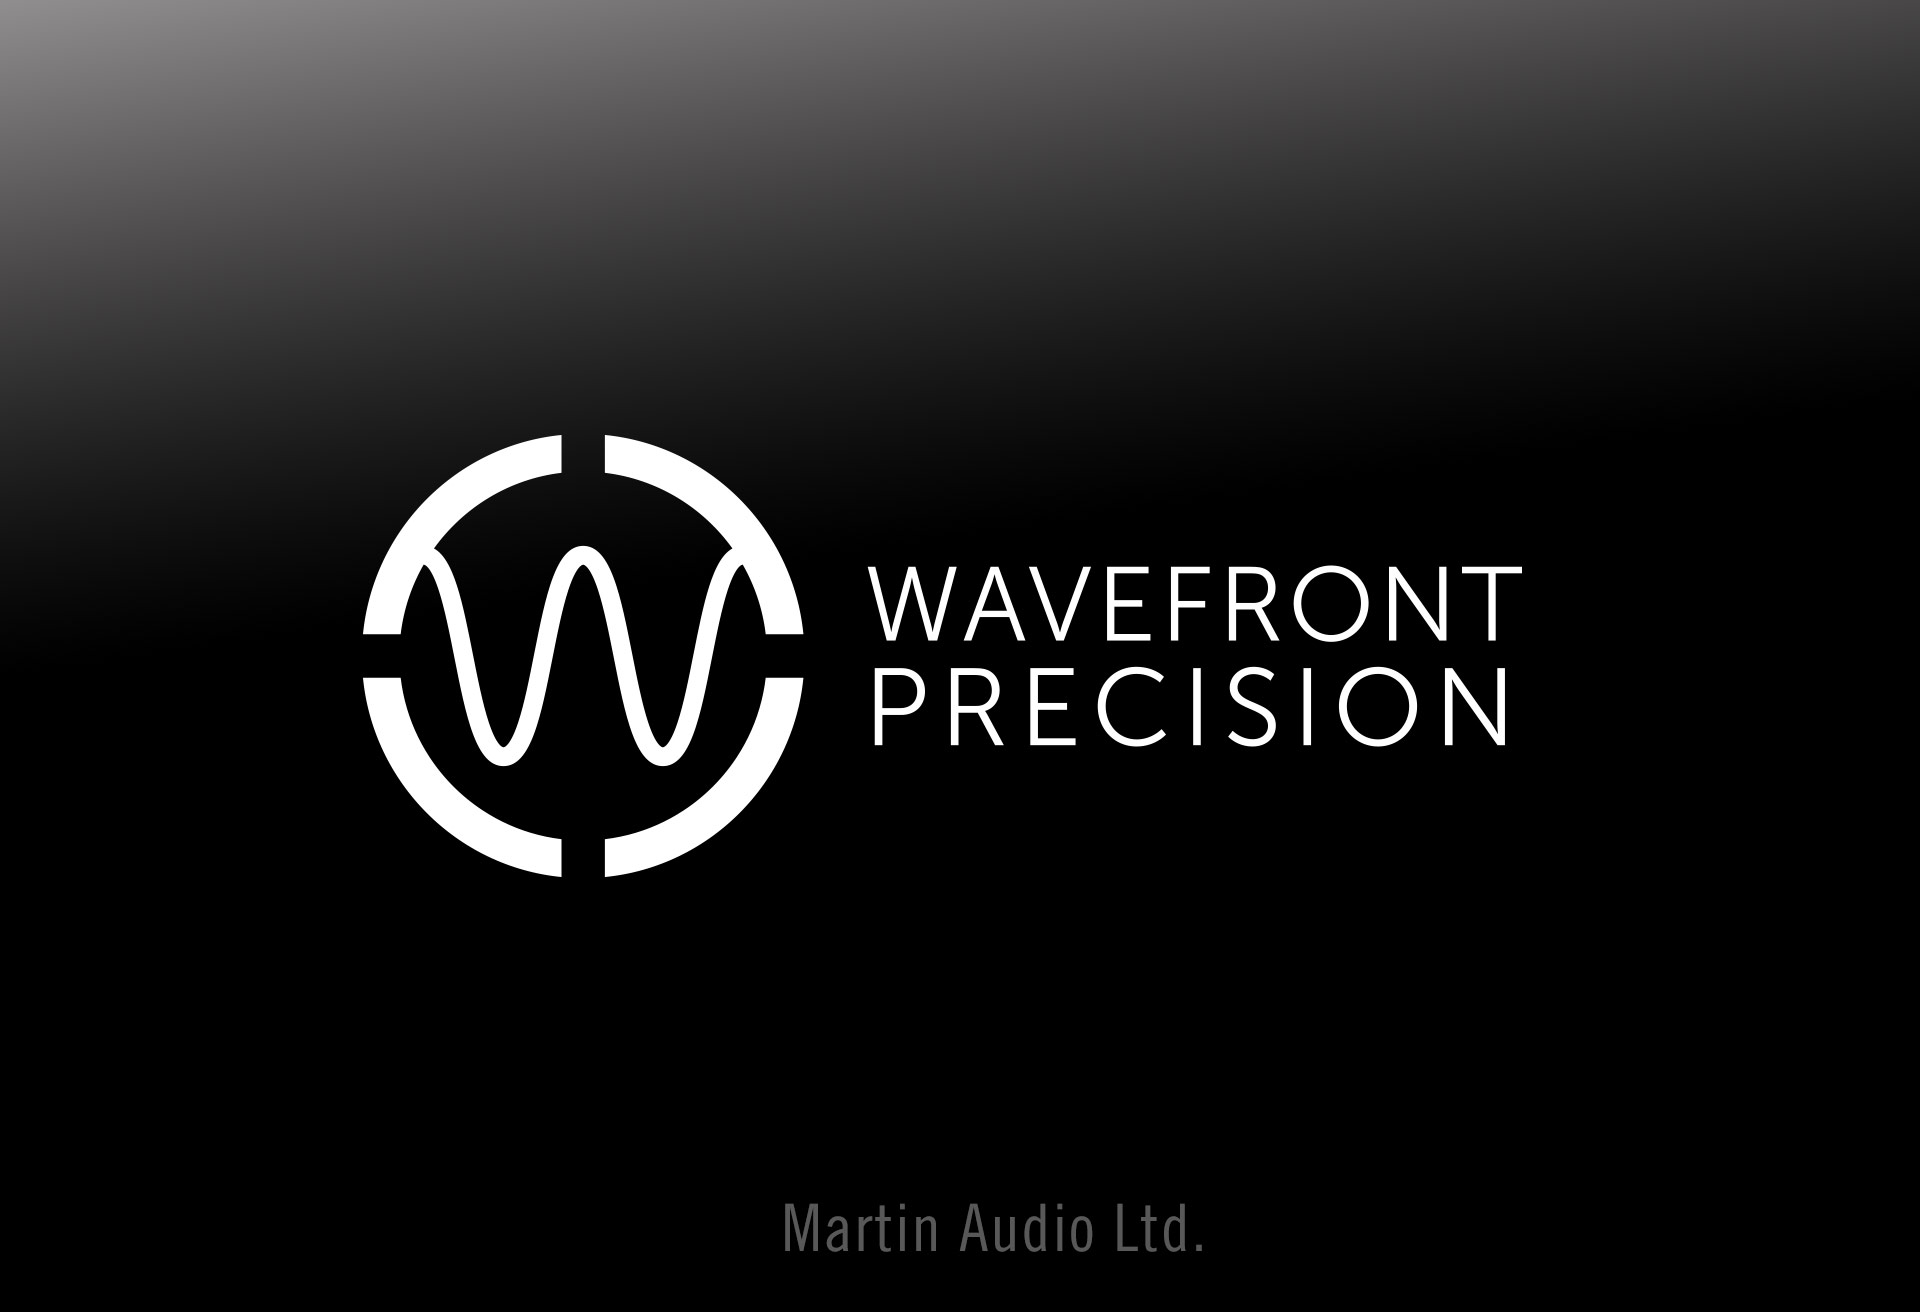 Martin Audio - Wavefront Precision Logo Design